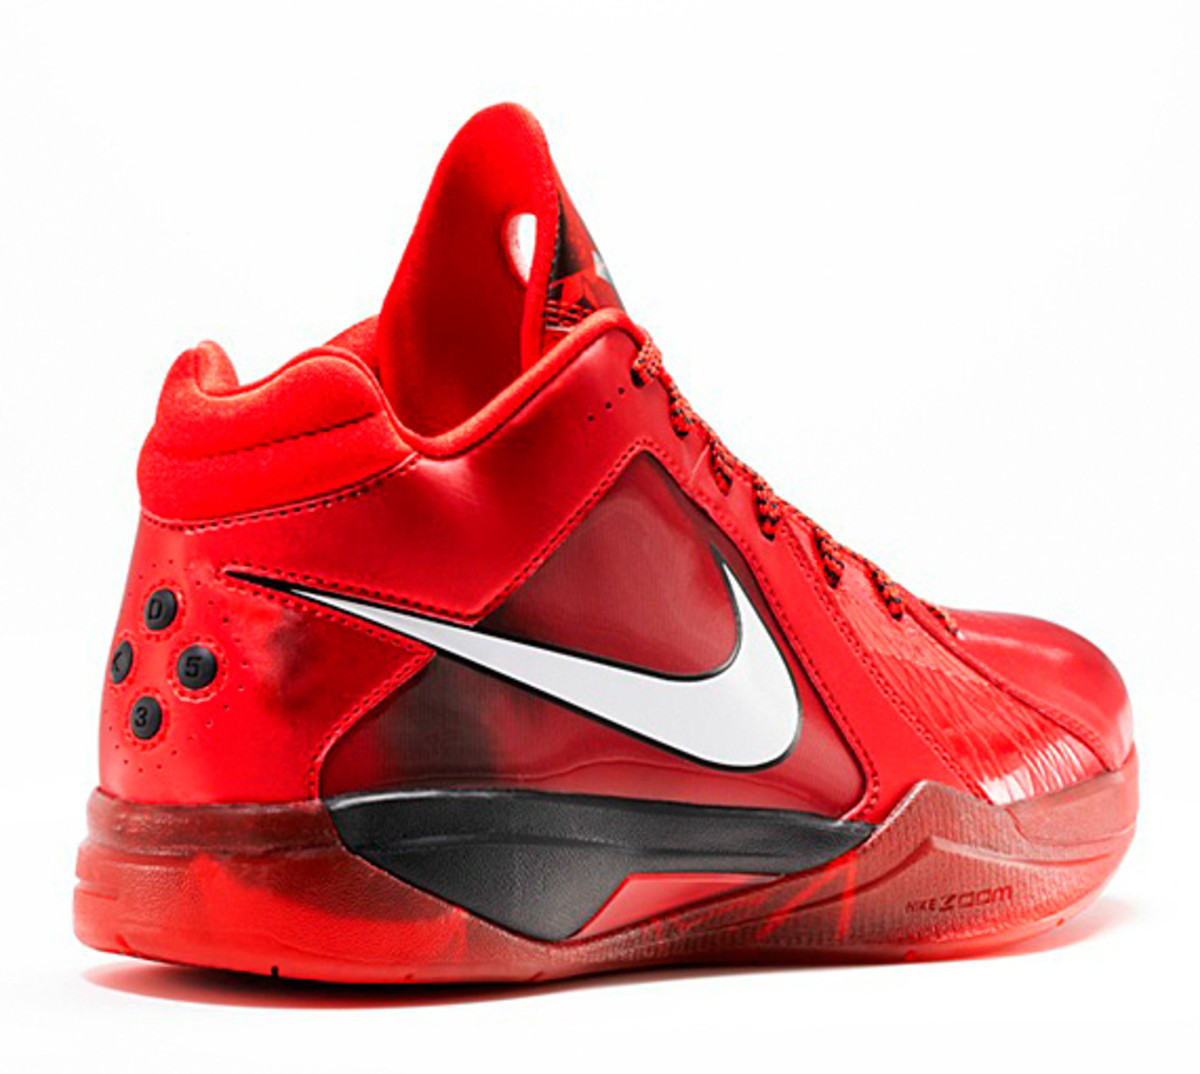 kevin-durant-nike-all-star-zoom-kd-iii-06